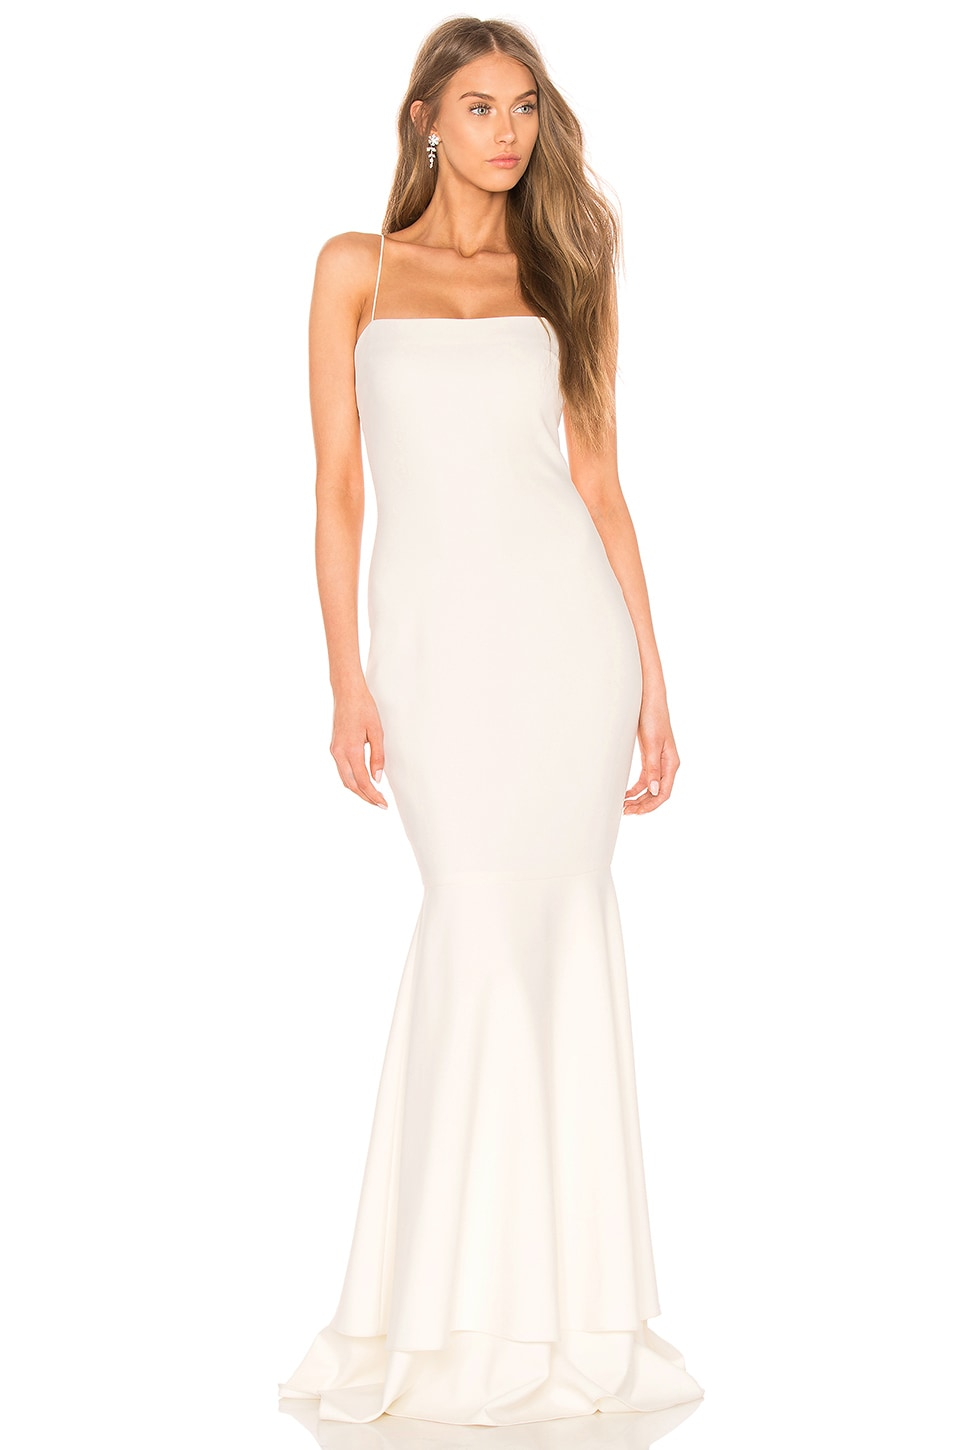 LIKELY Aurora Gown in White